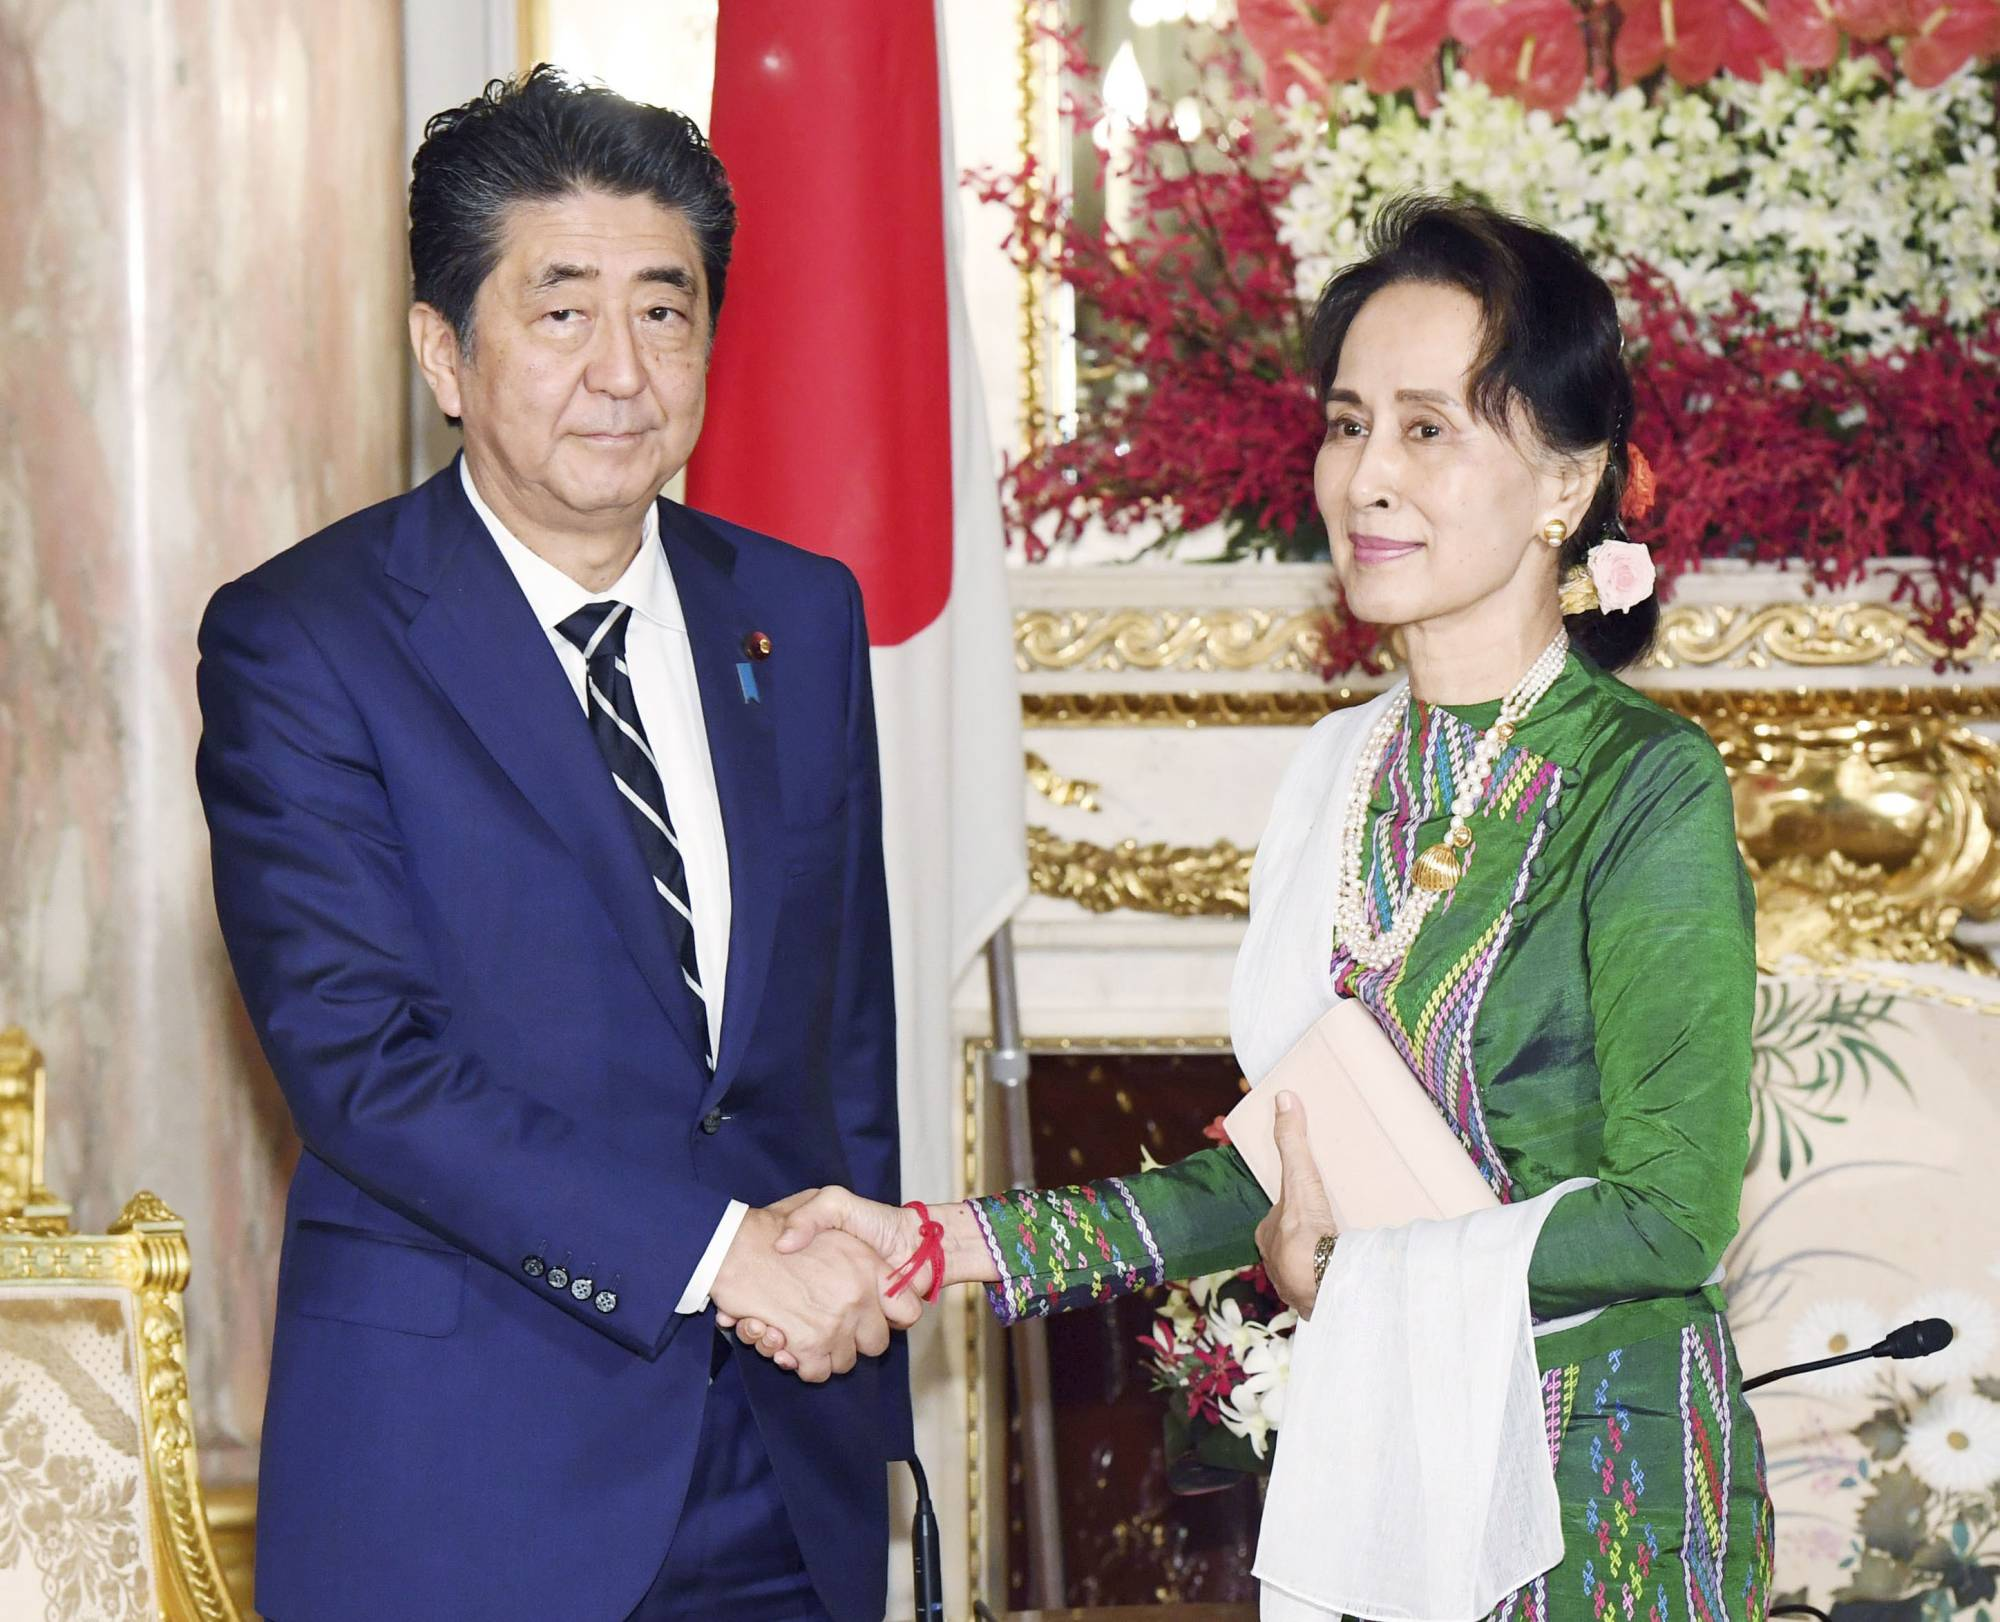 Then-Prime Minister Shinzo Abe and Myanmar's leader Aung San Suu Kyi at the state guesthouse in Tokyo in October last year | KYODO